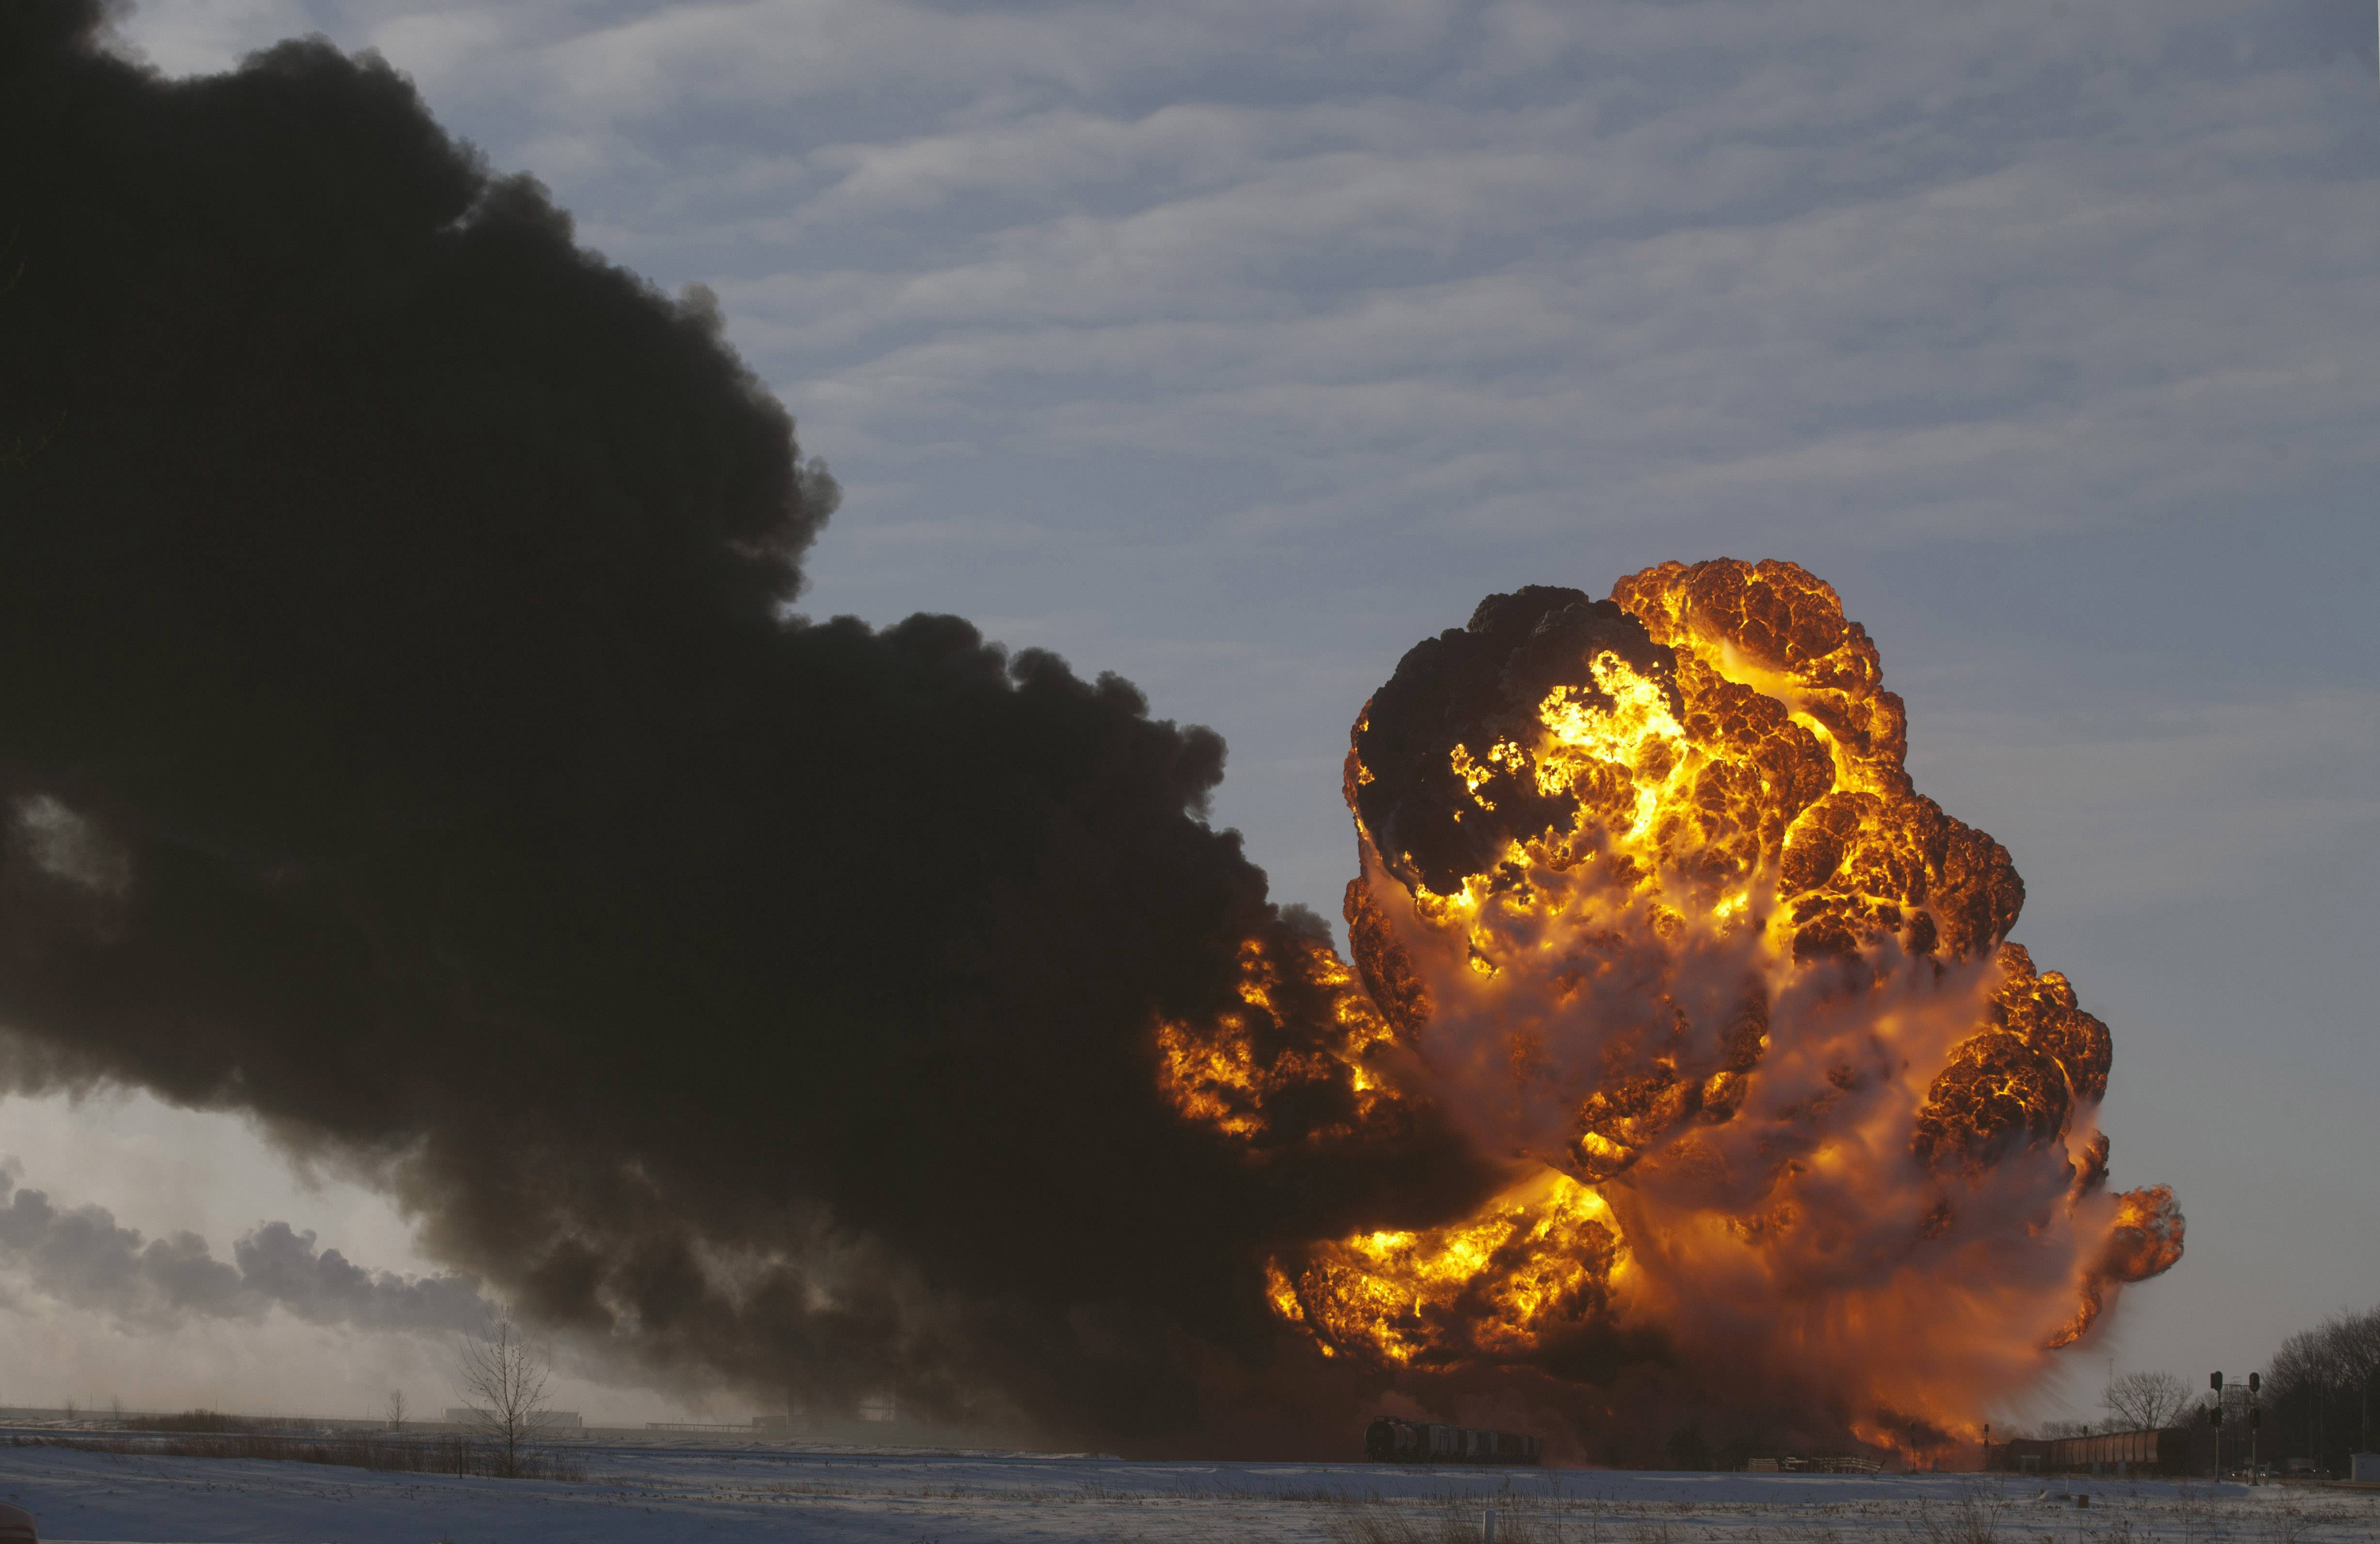 This Dec. 30, 2013 photo shows a fireball going up at the site of an oil train derailment in Casselton, N.D.  Spurred by a series of fiery train crashes, a push by government and industry to make safer tank cars used for shipping crude oil and ethanol has bogged down in squabbling and finger-pointing over whether they're needed and if so, who should pay.